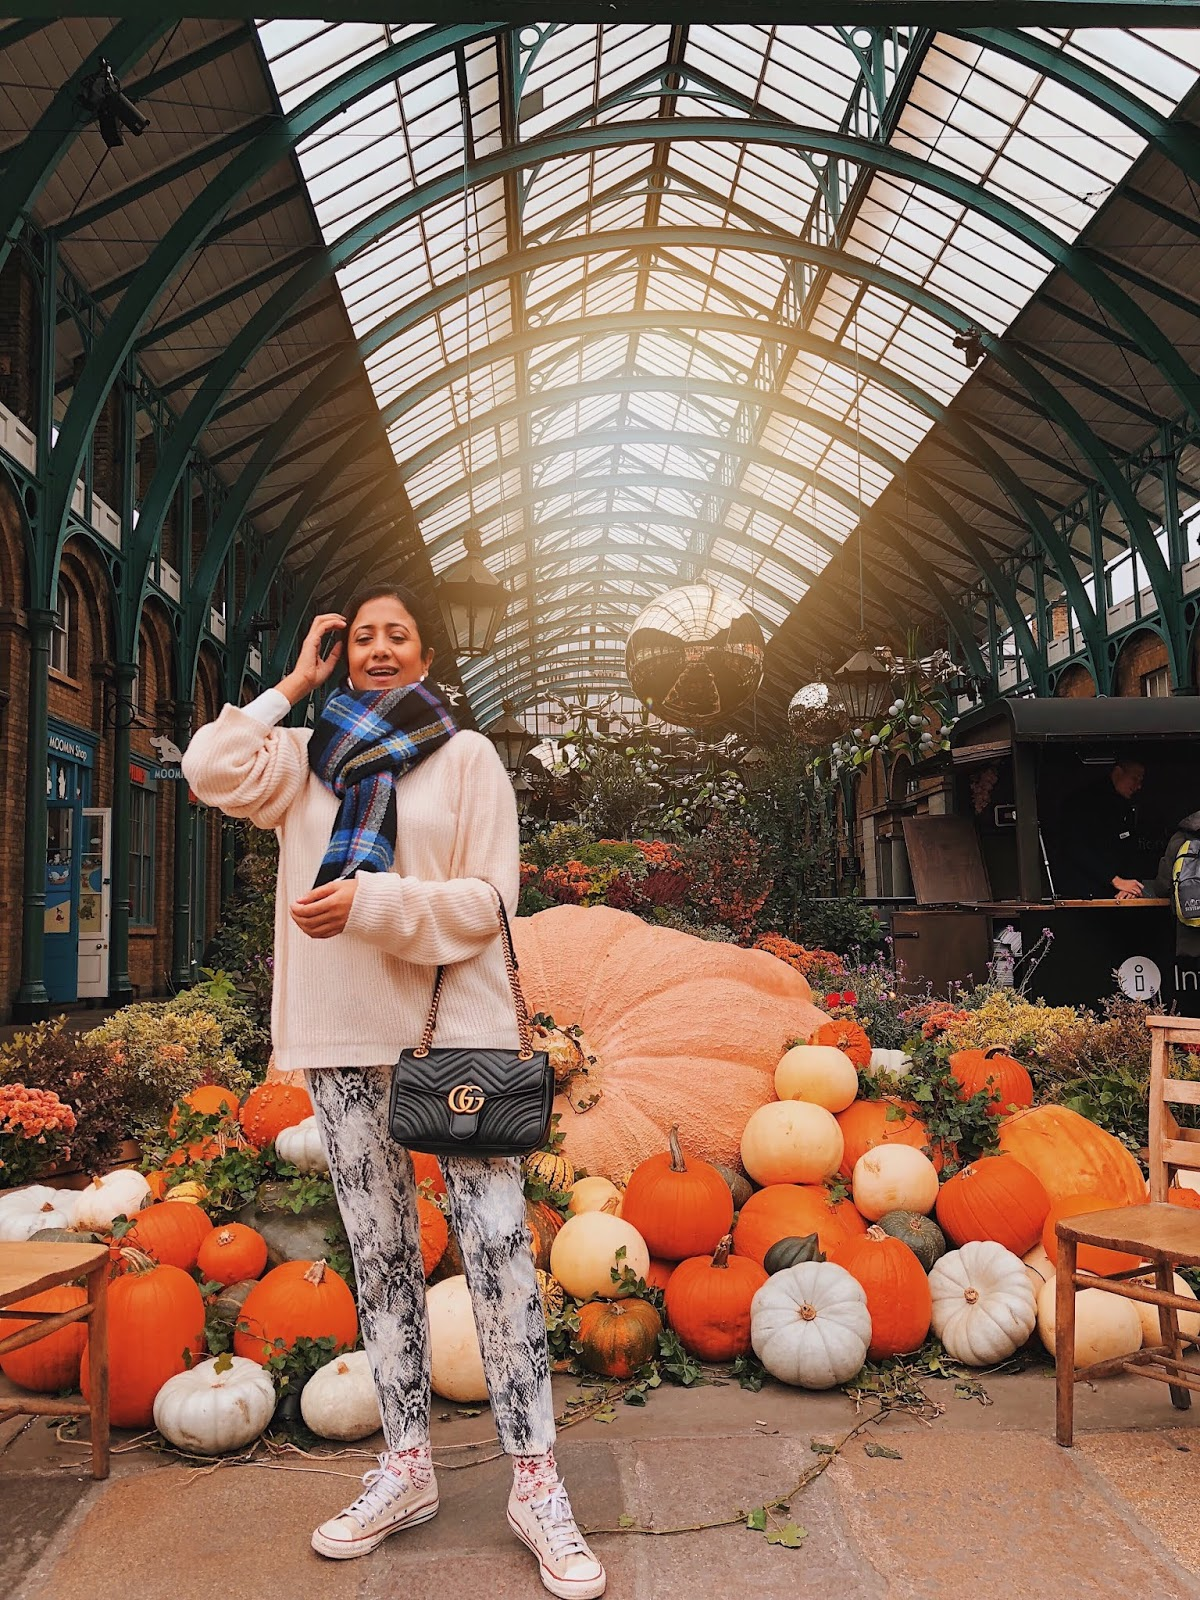 london instagram spot, autumn in london, indian blogger, london blog, covent garden, snake print trouser, all white, winter white, gucci bag, effortless chic